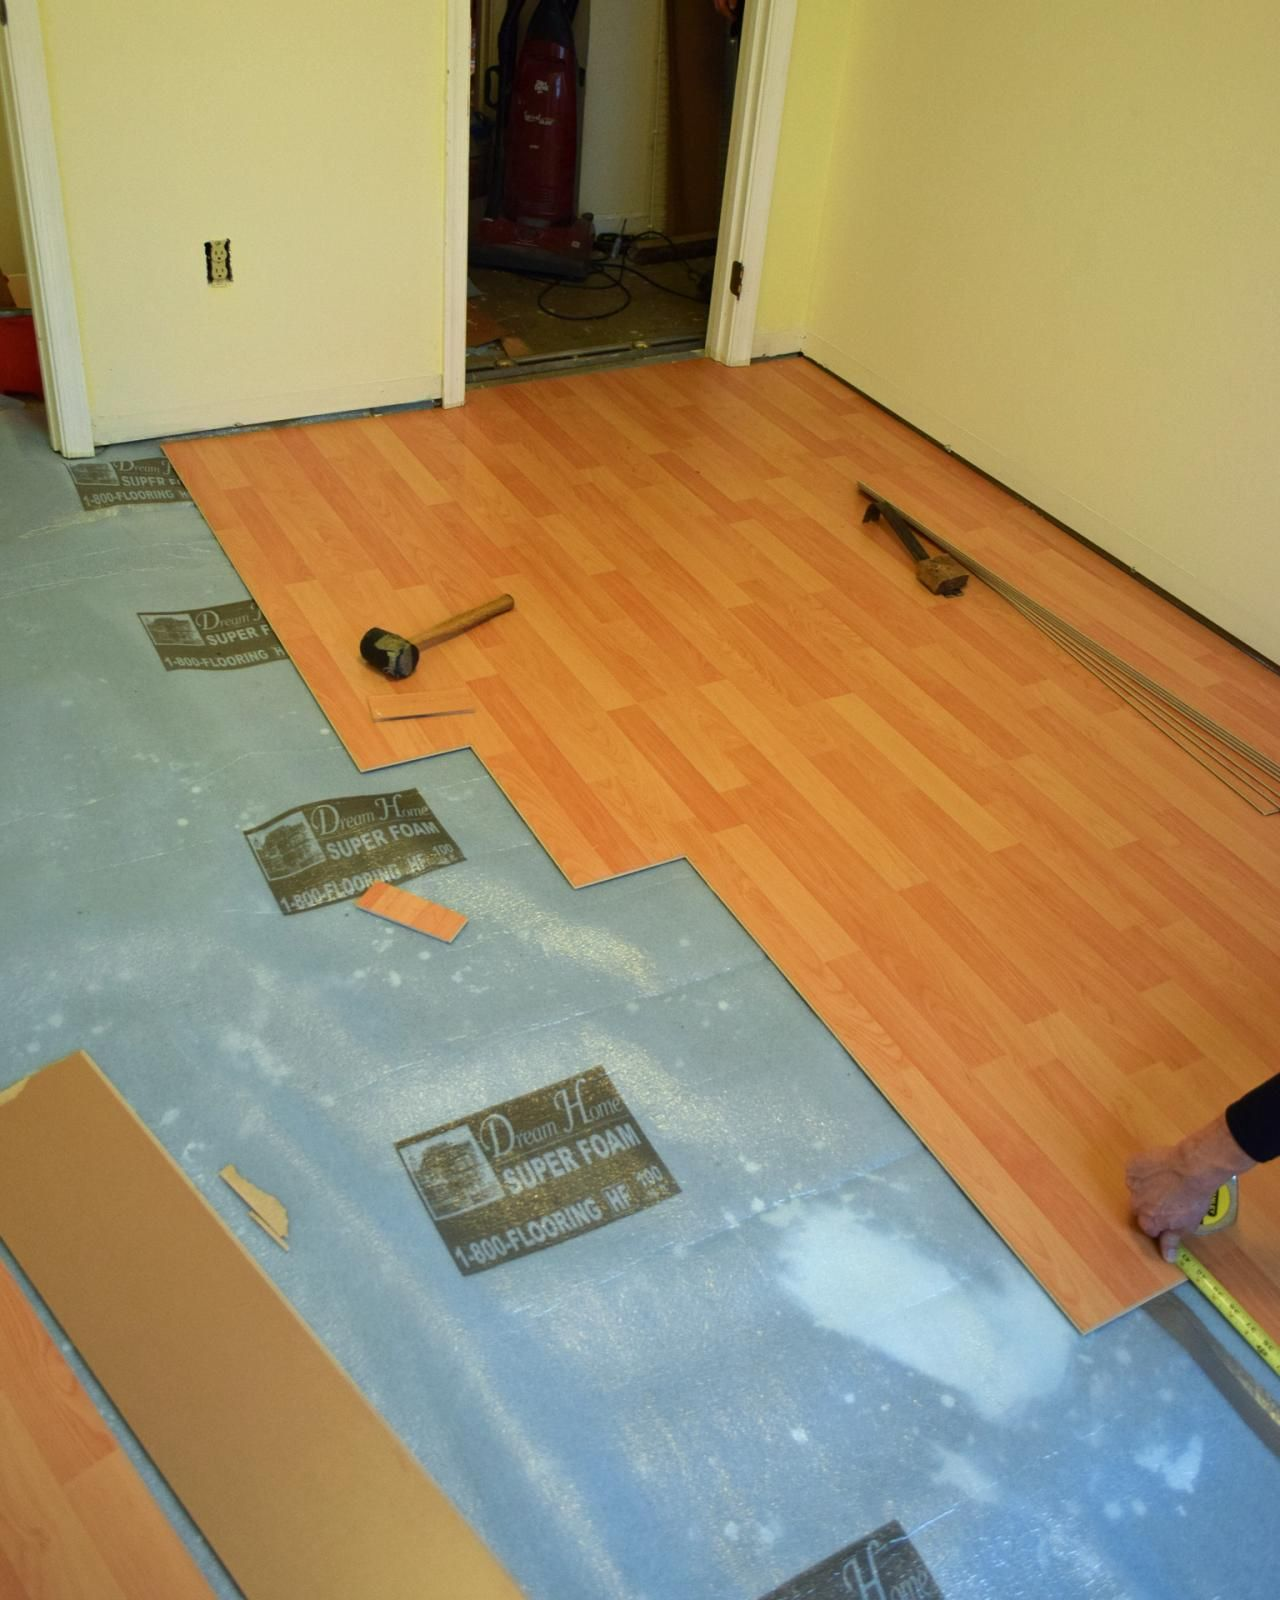 How to install laminate flooring diy network laminate flooring how to install laminate flooring dailygadgetfo Images